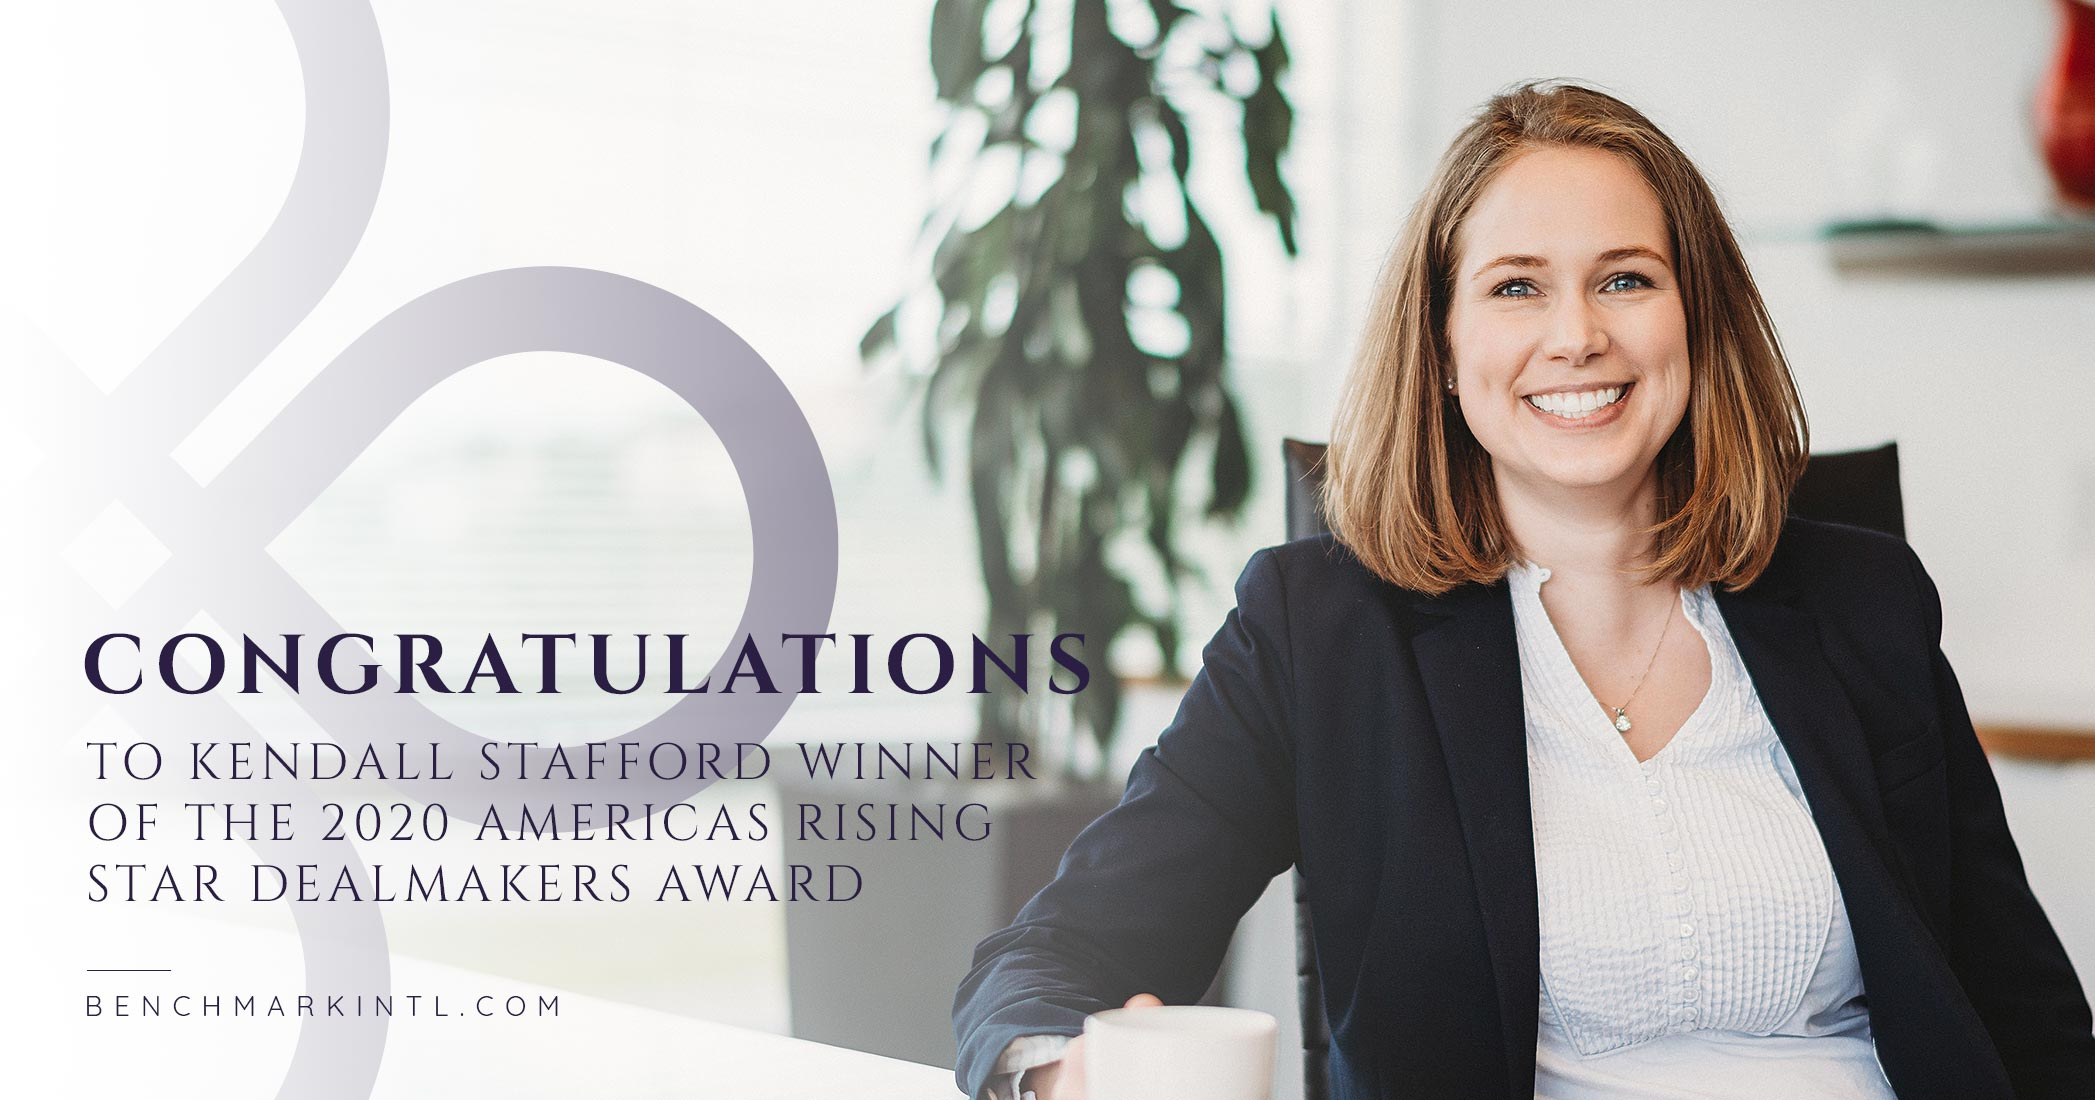 Kendall Stafford Wins the 2020 Americas Rising Star Dealmakers Award